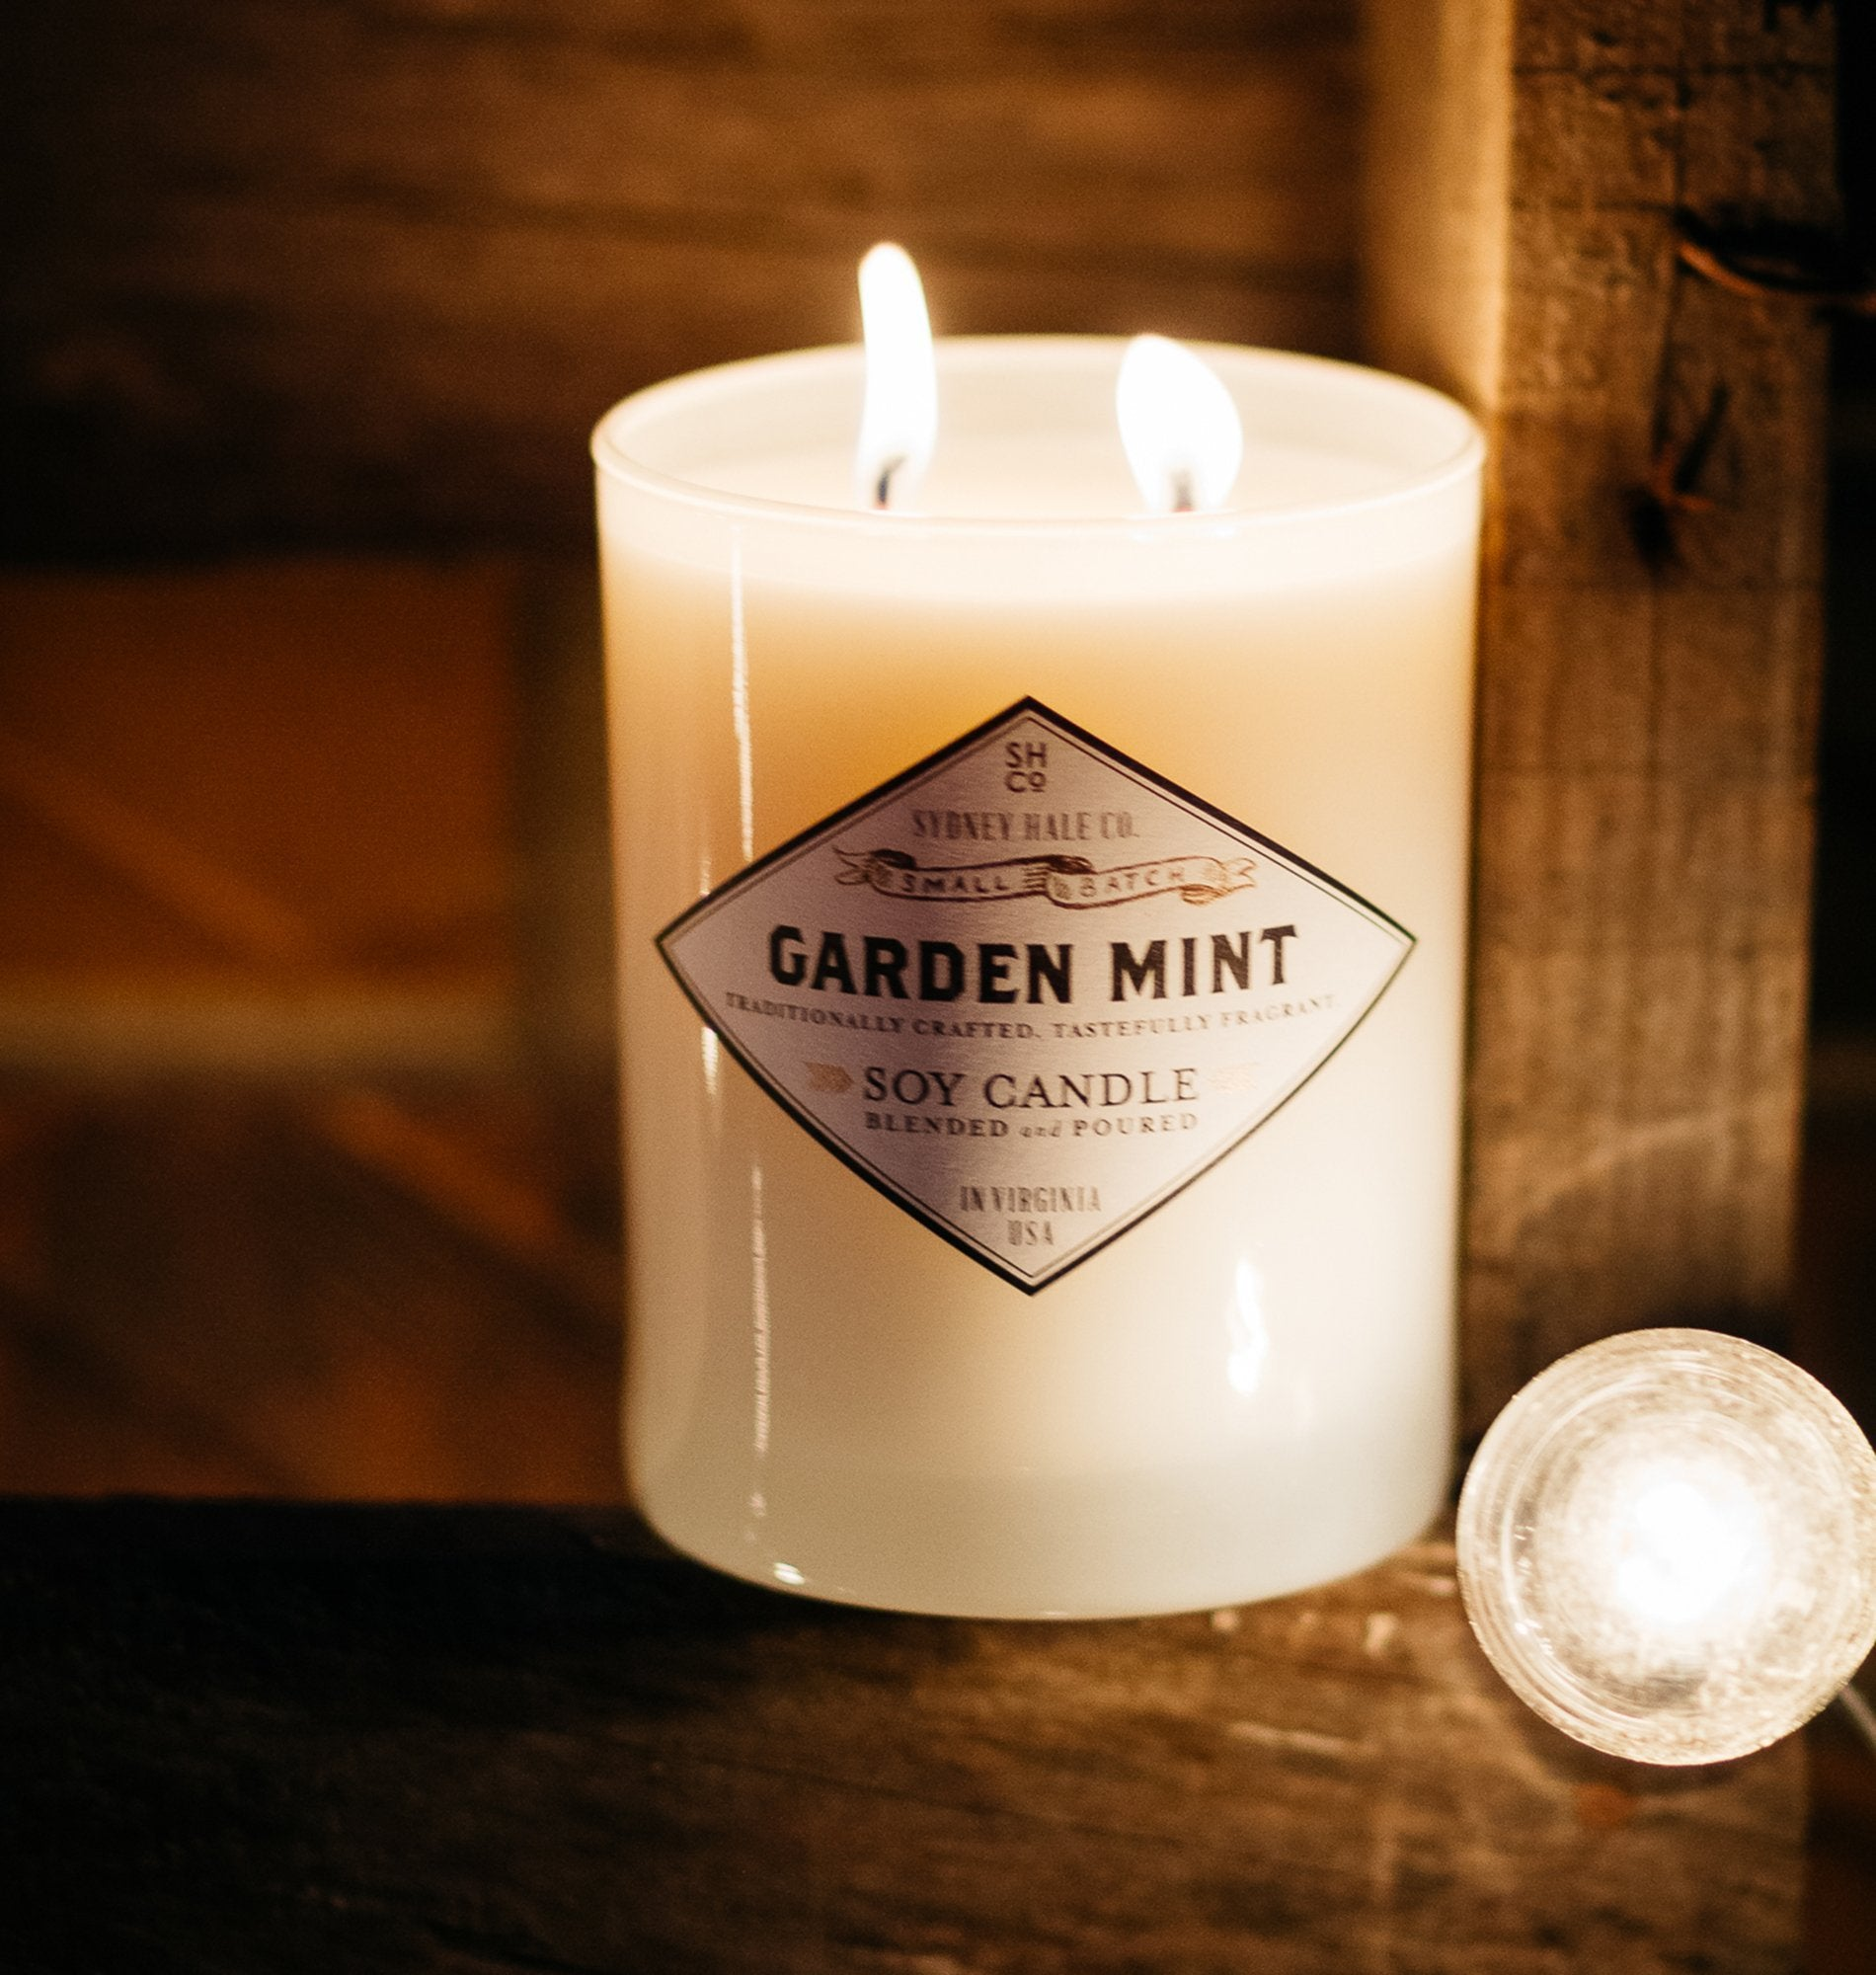 Sydney Hale Co, Garden Mint Candle |$30.00 | Miller\'s Point- From ...